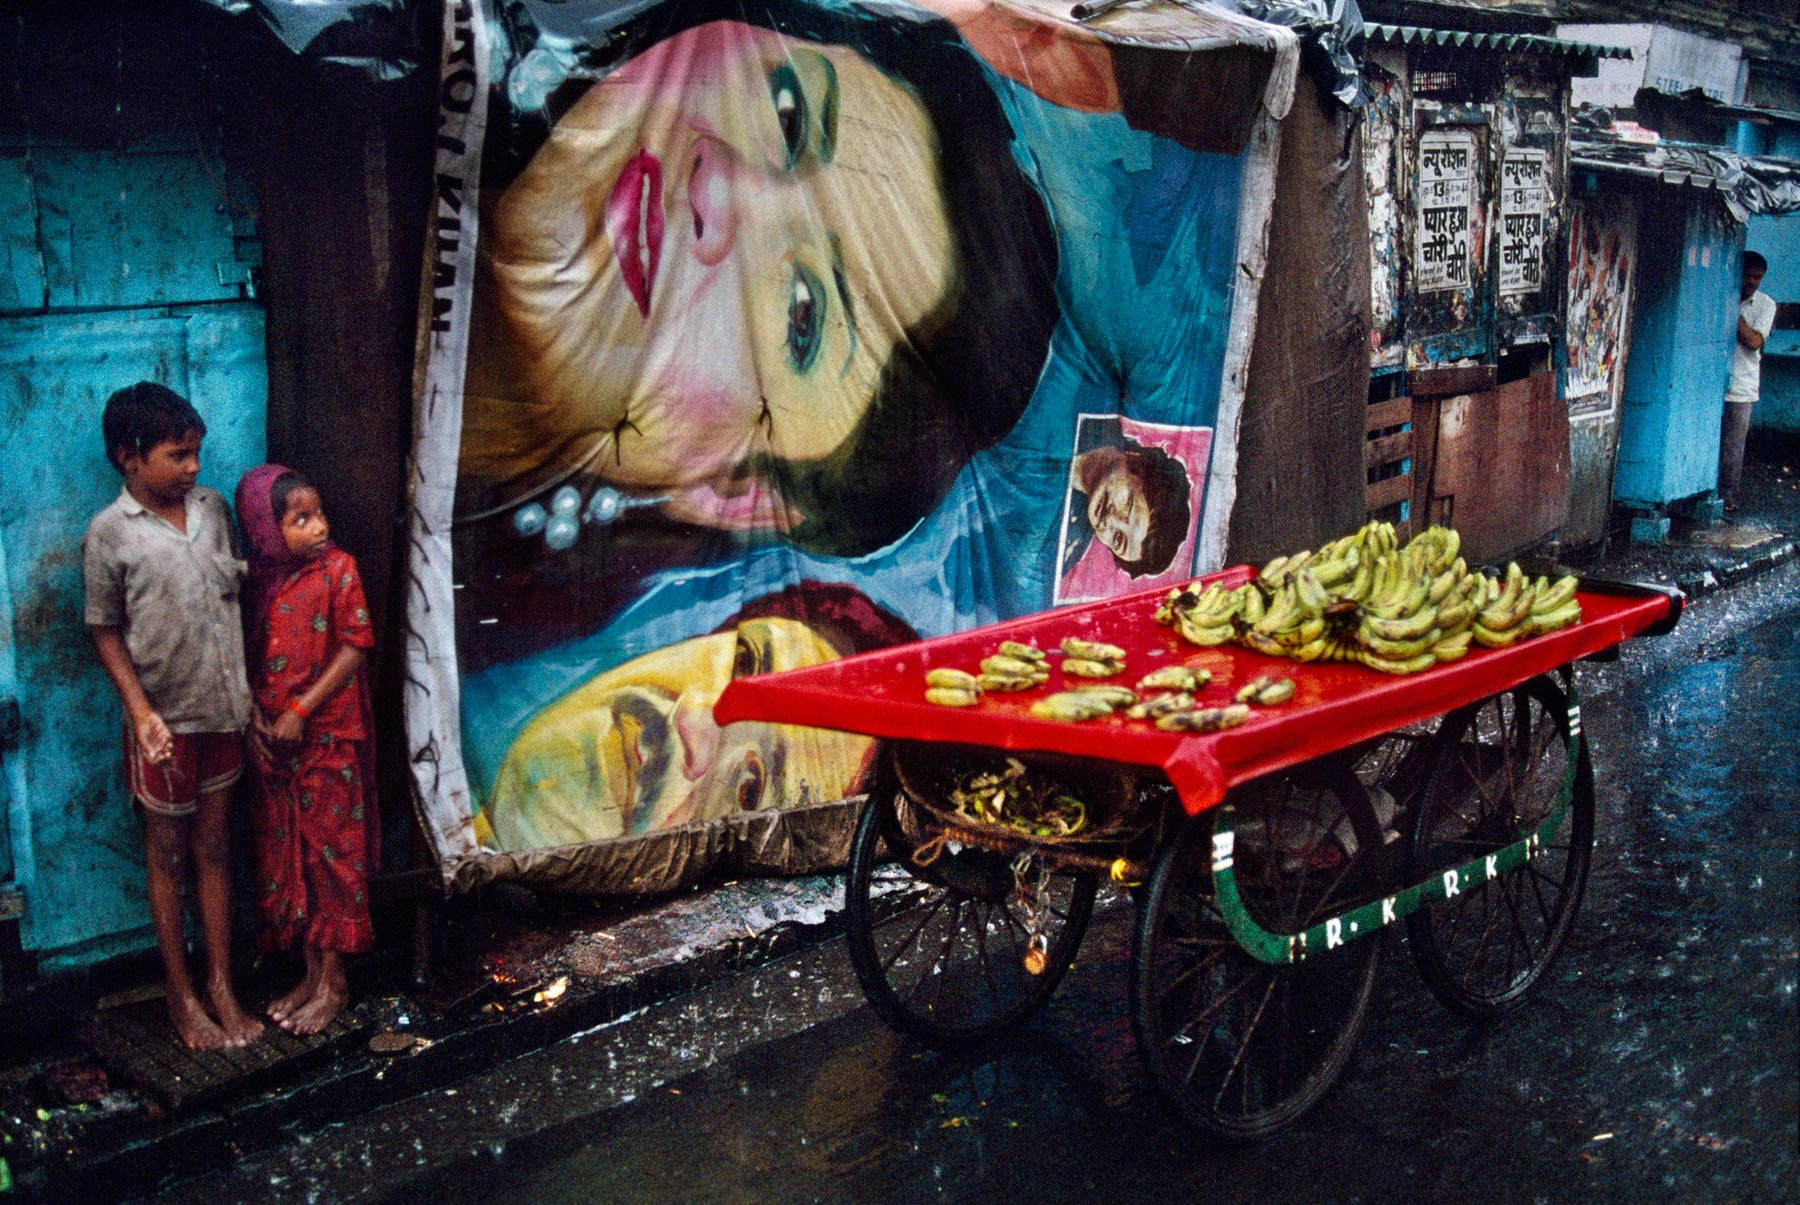 Banana Cart, Bombay, India, 1993